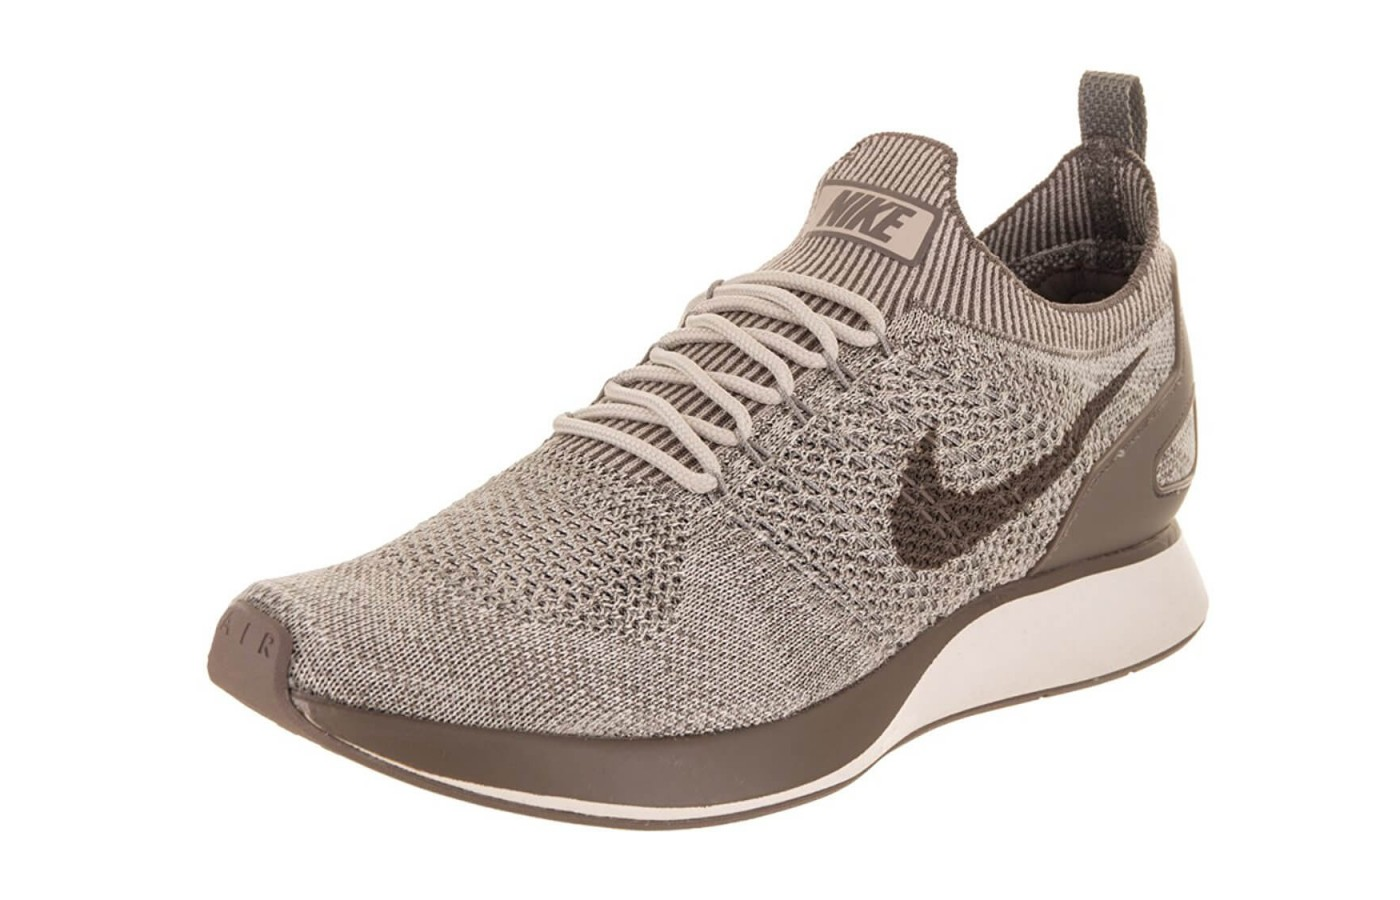 The Nike Air Zoom Mariah Flyknit Racer features a breathable Flyknit upper